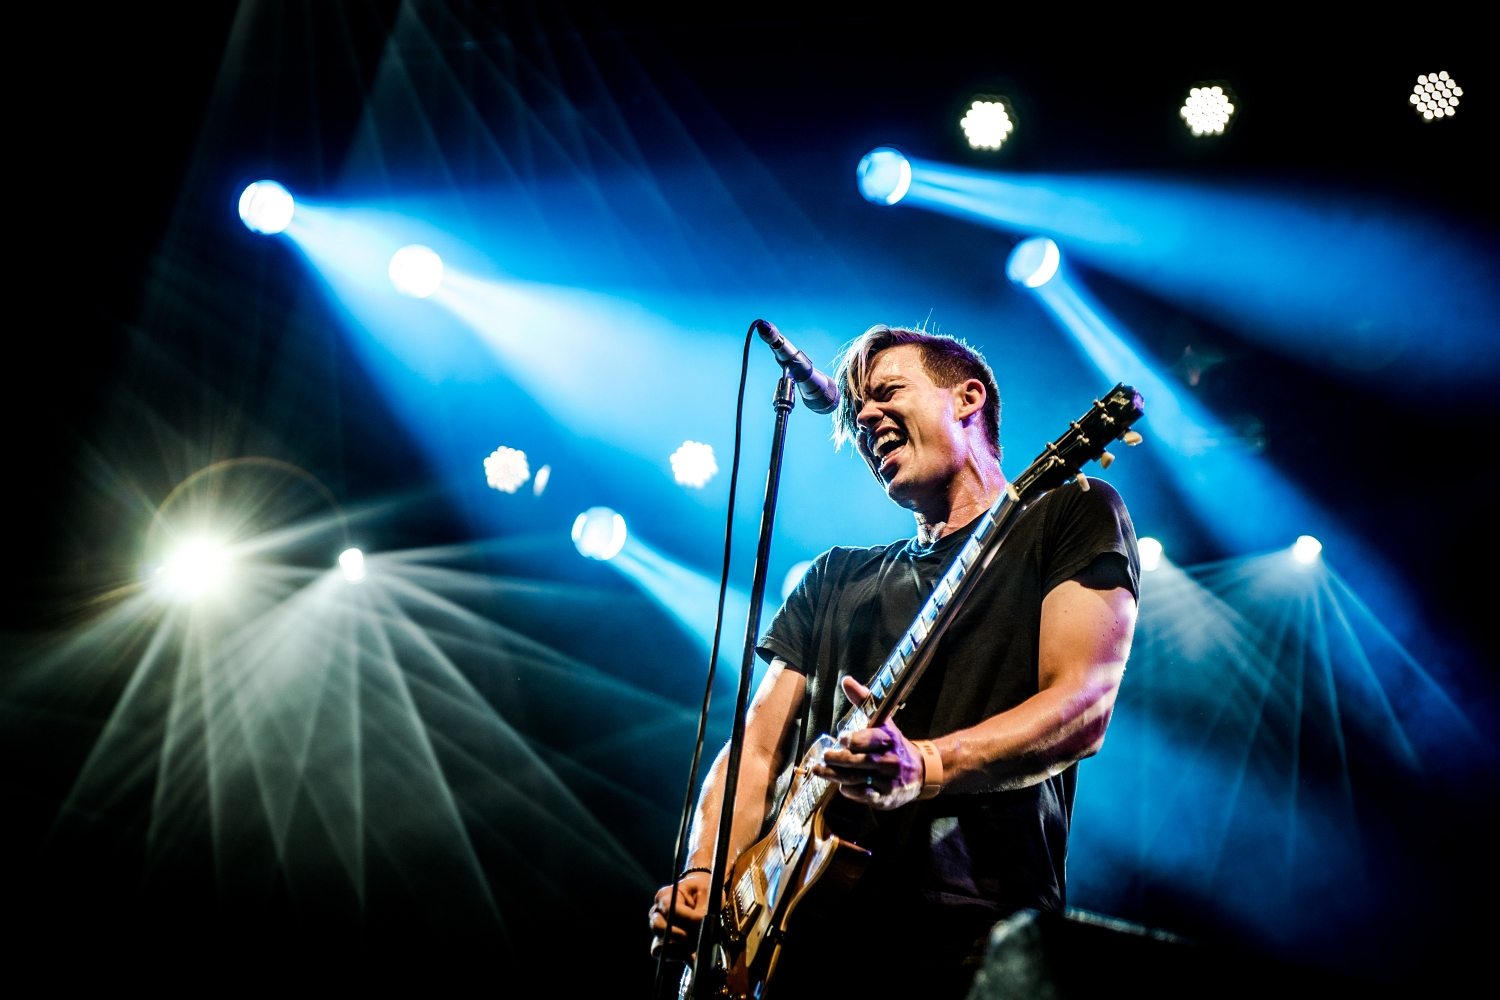 Johnny Lang @ Rock Werchter 2014 (Jan Van den Bulck)